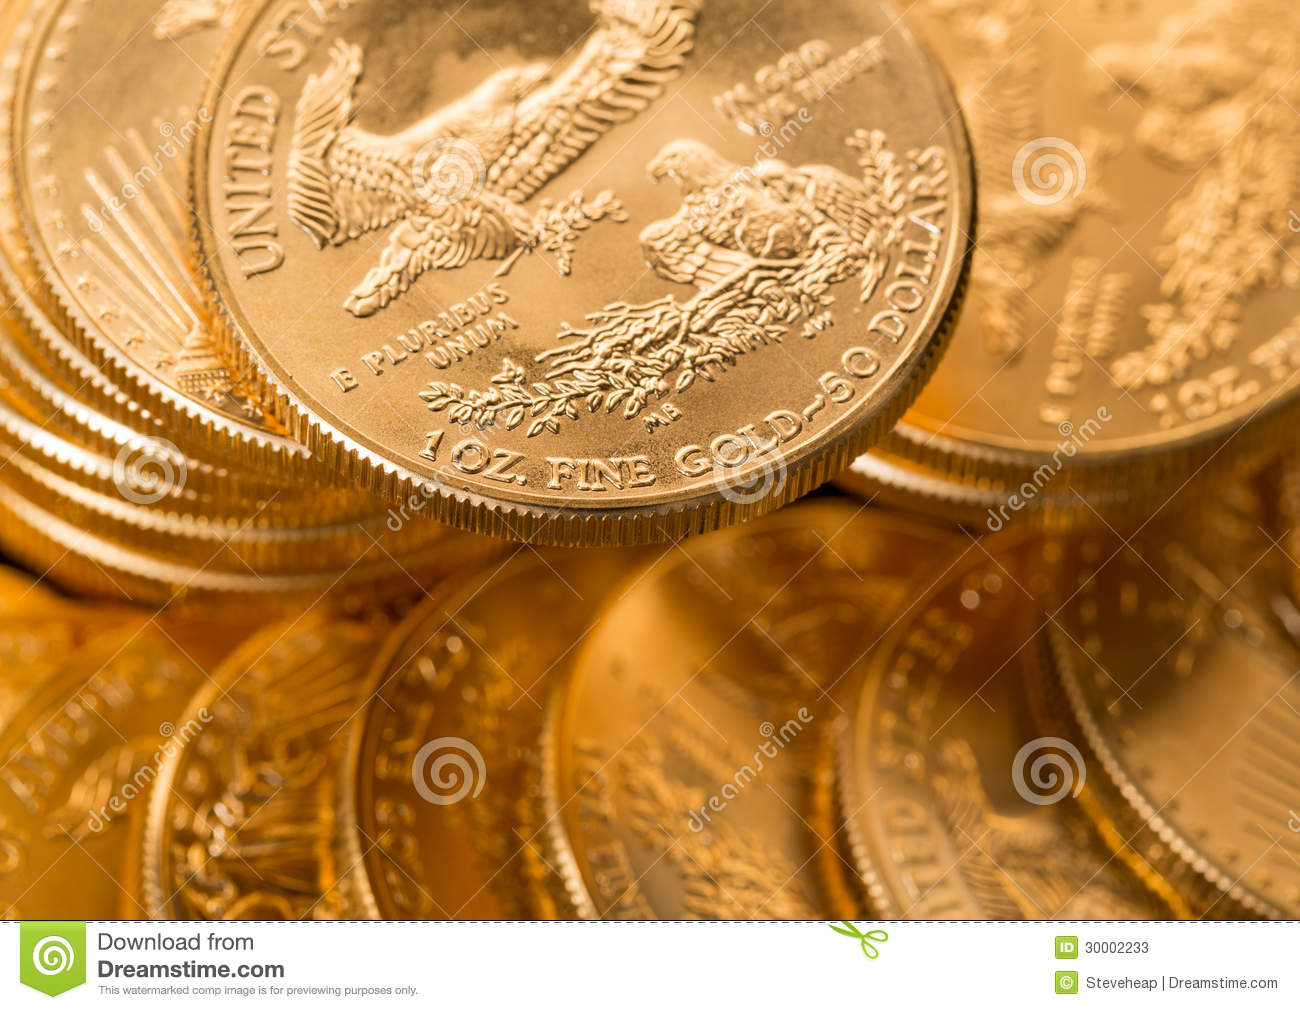 Collection of one ounce gold coins